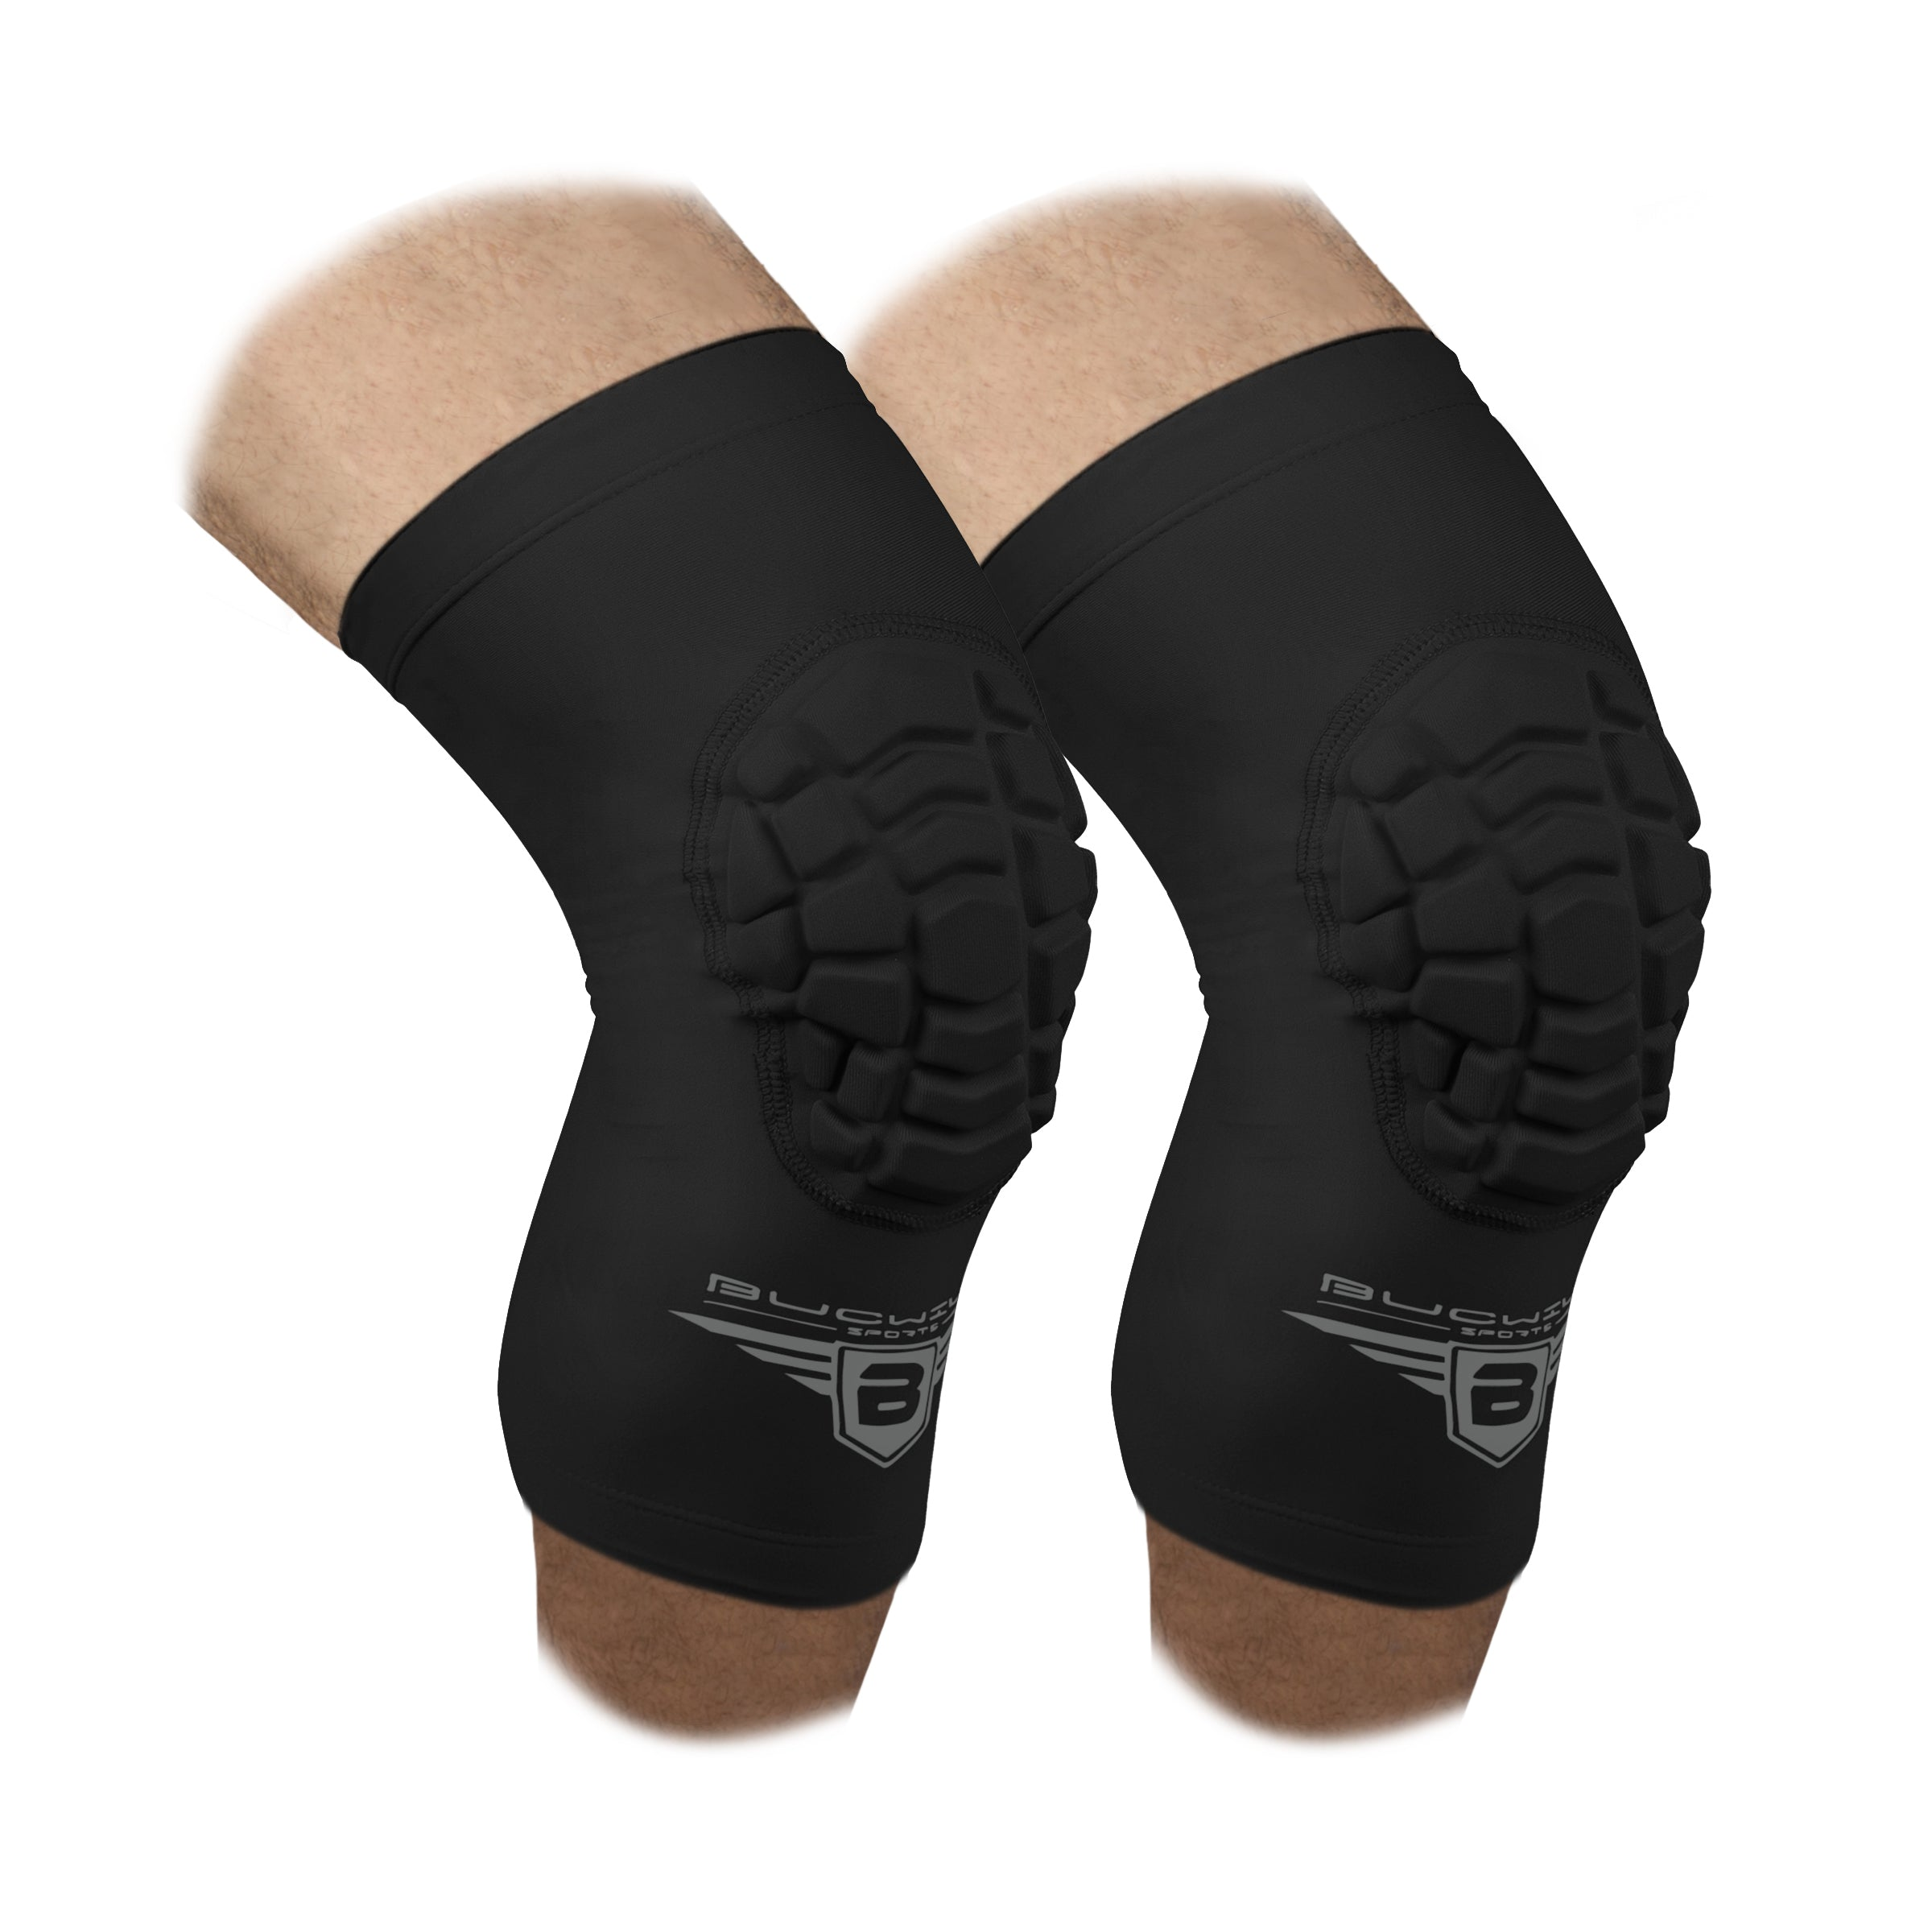 Compression Knee Pads - Black